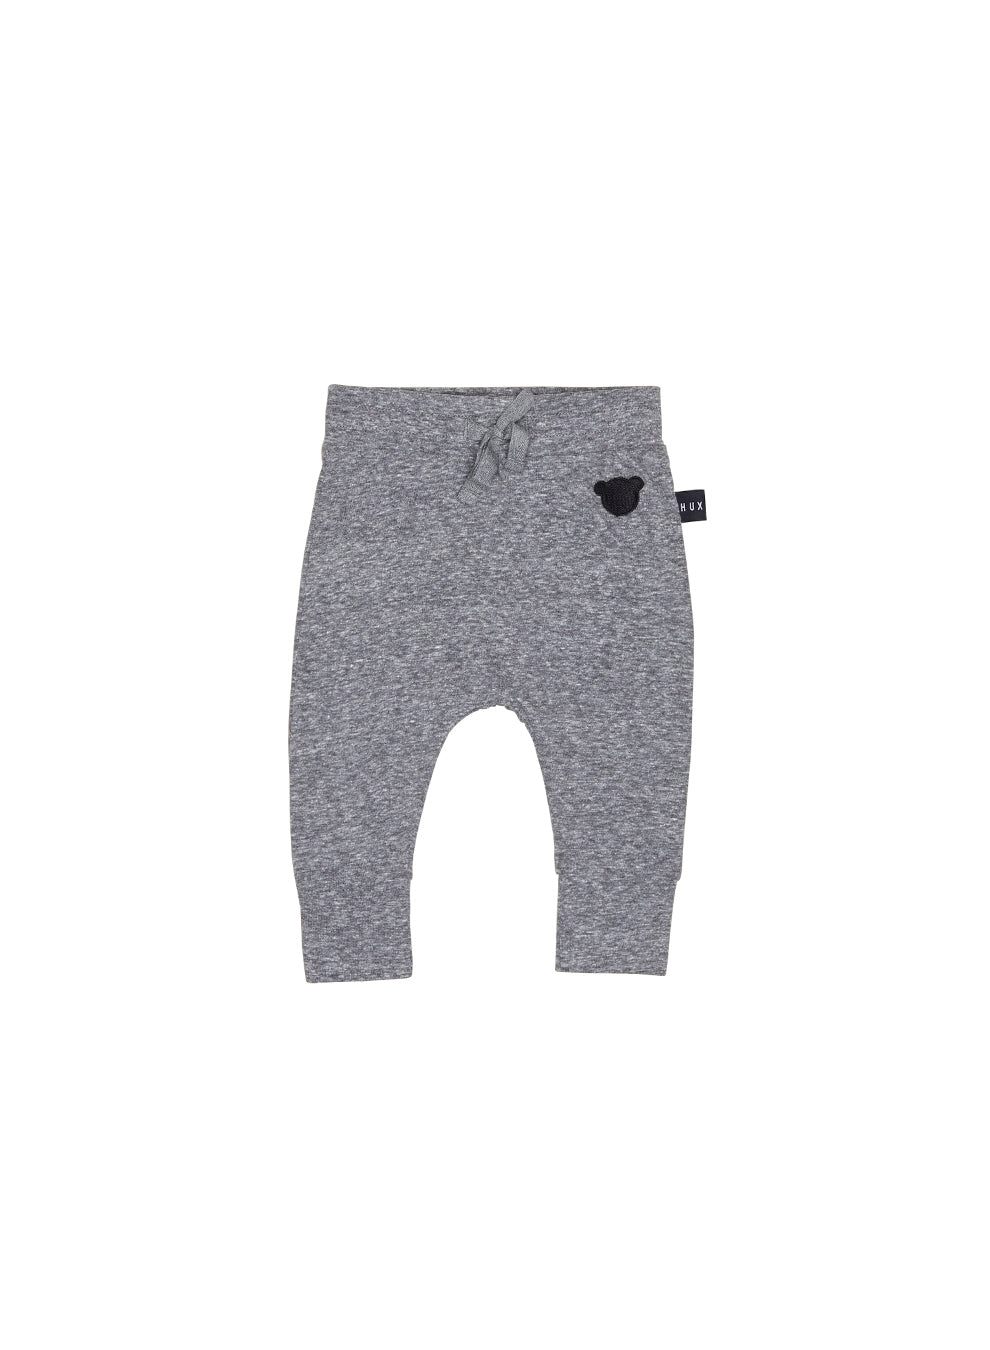 Huxbaby Charcoal Slub Drop Crotch Pant - Charcoal Slub